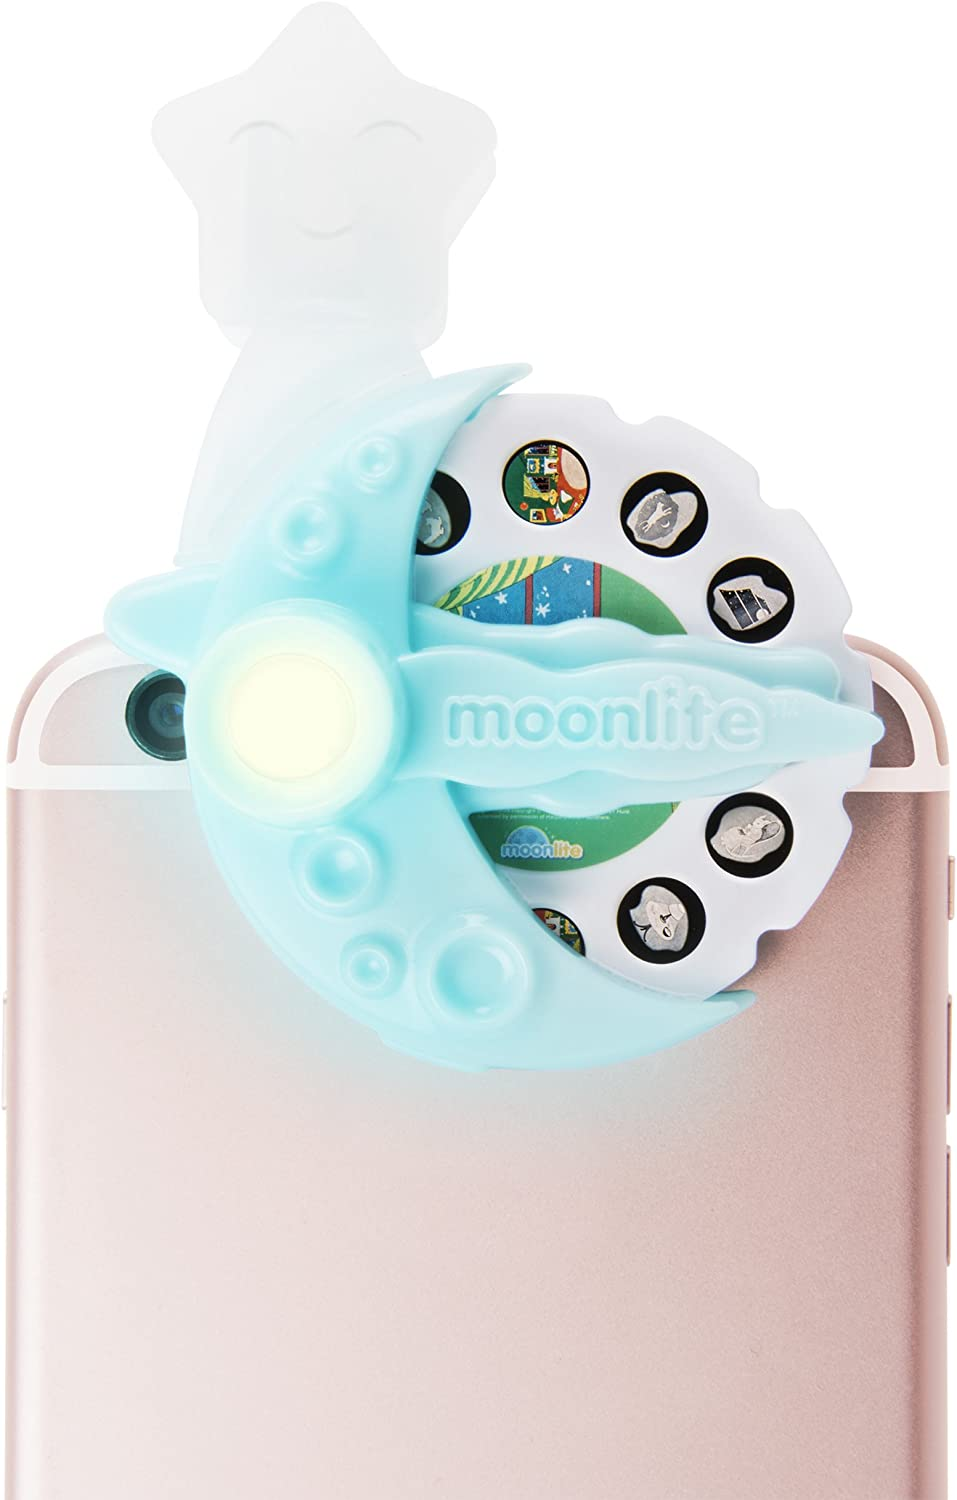 Amazon.com: Proyector Storybook Moonlite, pack de ...